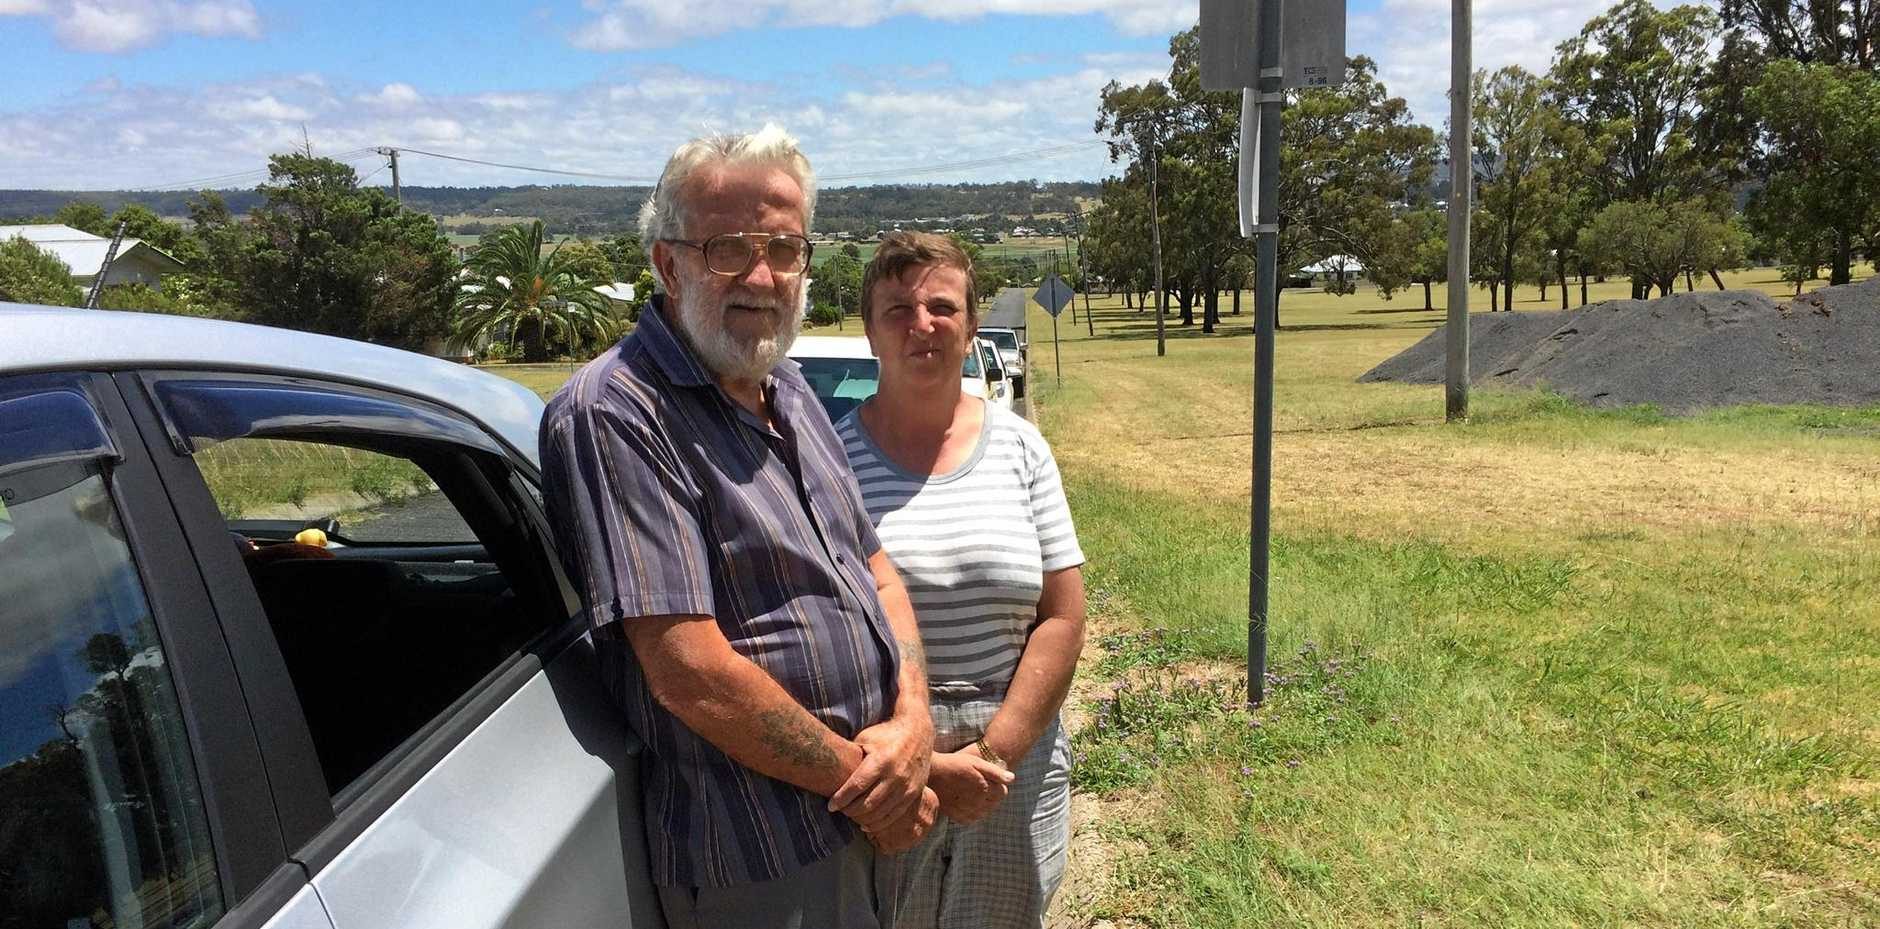 Ken and Elizabeth Whiteland with their new car with smashed rear window on Williams St, Warwick where the incident occurred.